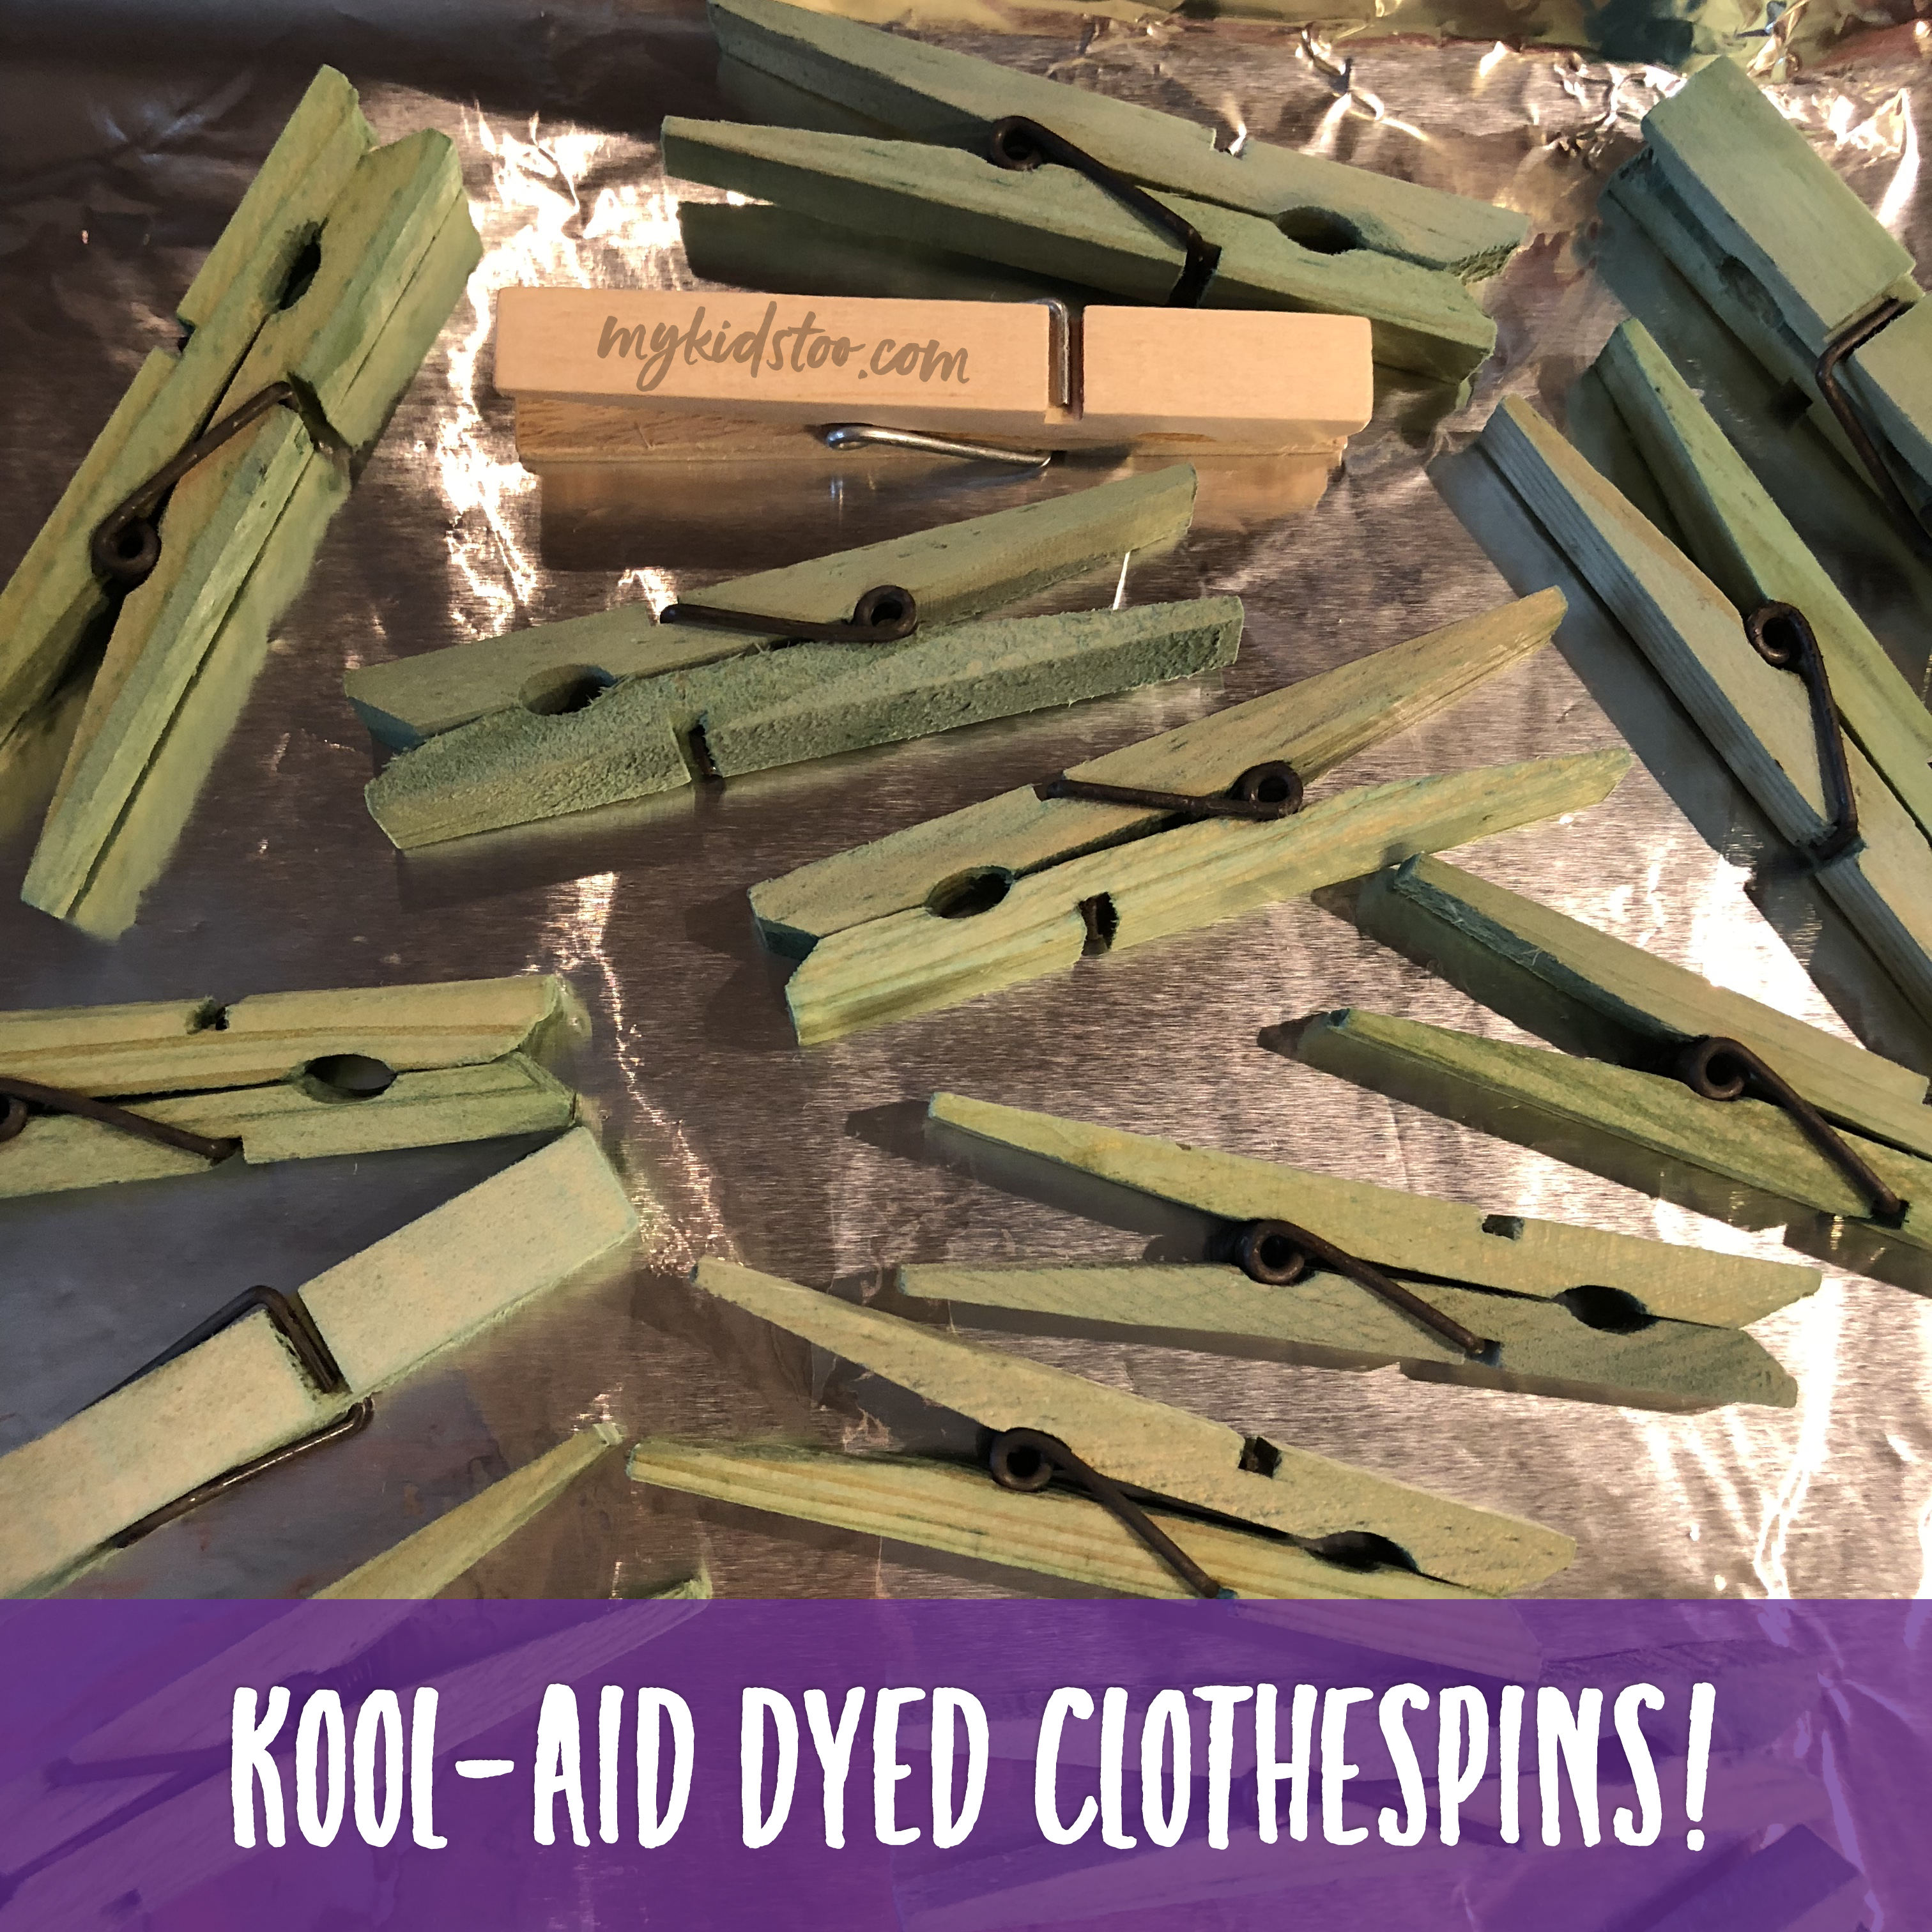 Kool-Aid Dyed Clothespins